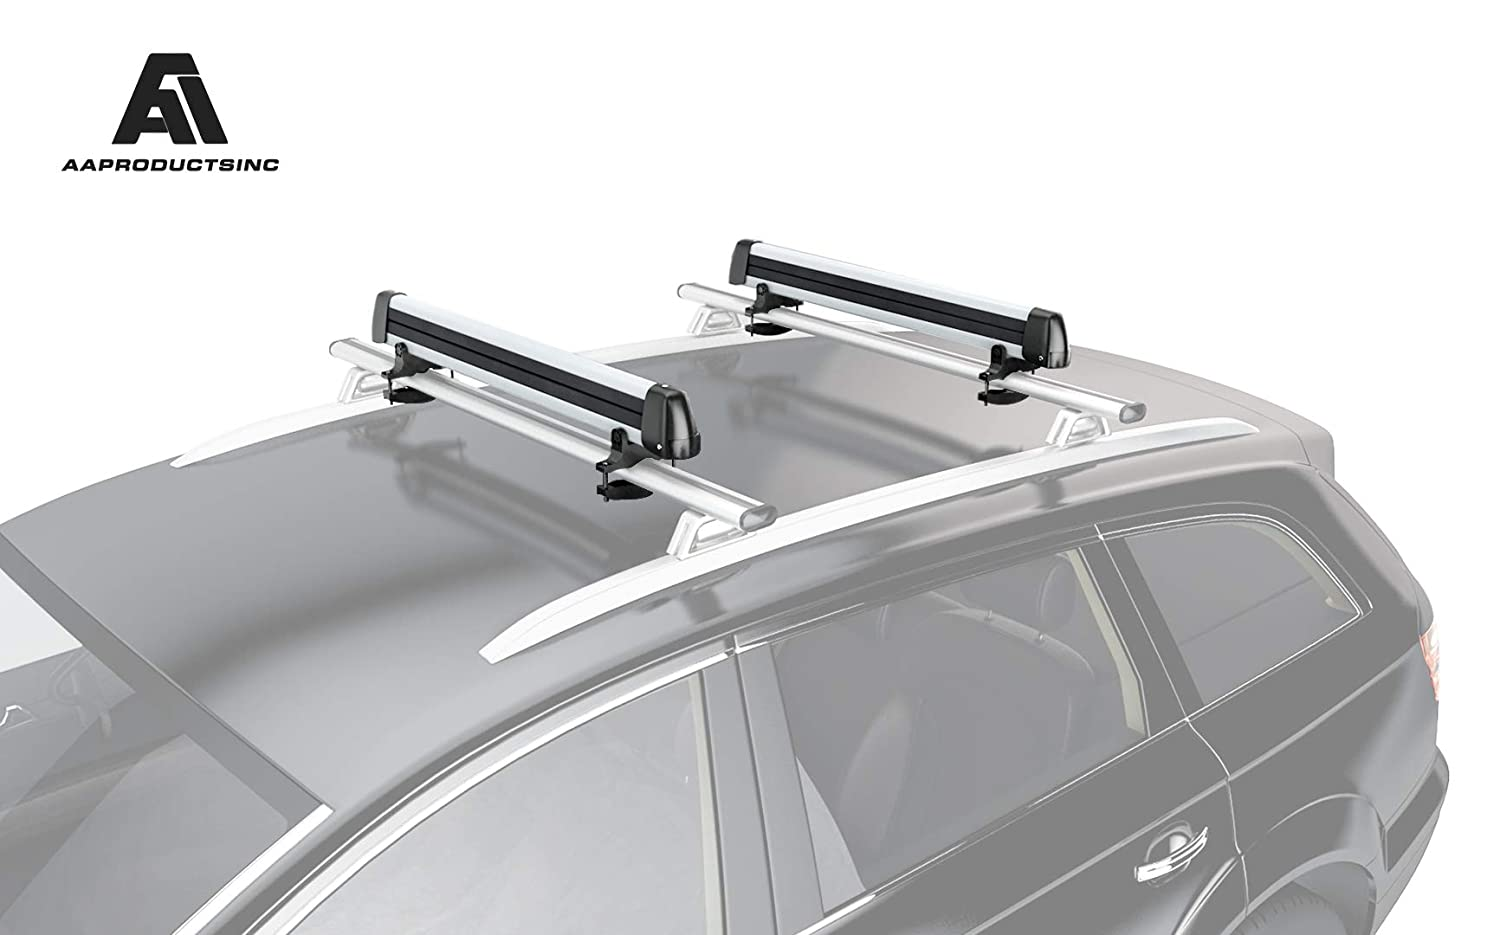 AA Products Ski Roof Rack Fits 6 Pairs Skis or 4 Snowboards, Ski Roof Carrier Fit Most Vehicles Equipped Cross Bars AA Prouducts